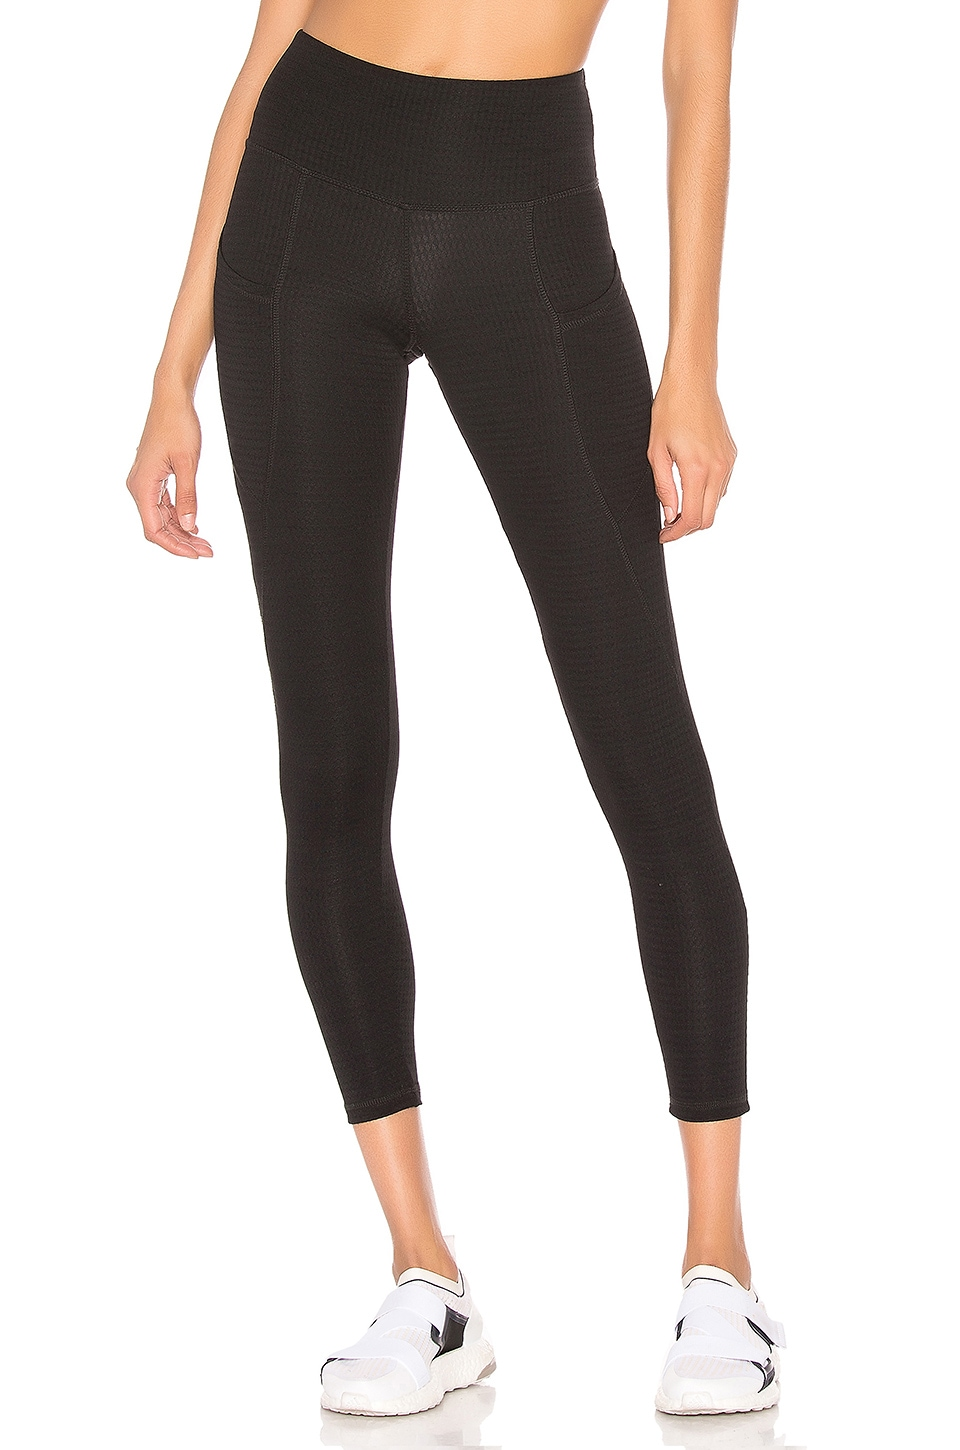 STRUT-THIS LEGGINGS LONGUEUR CHEVILLES FLYNN